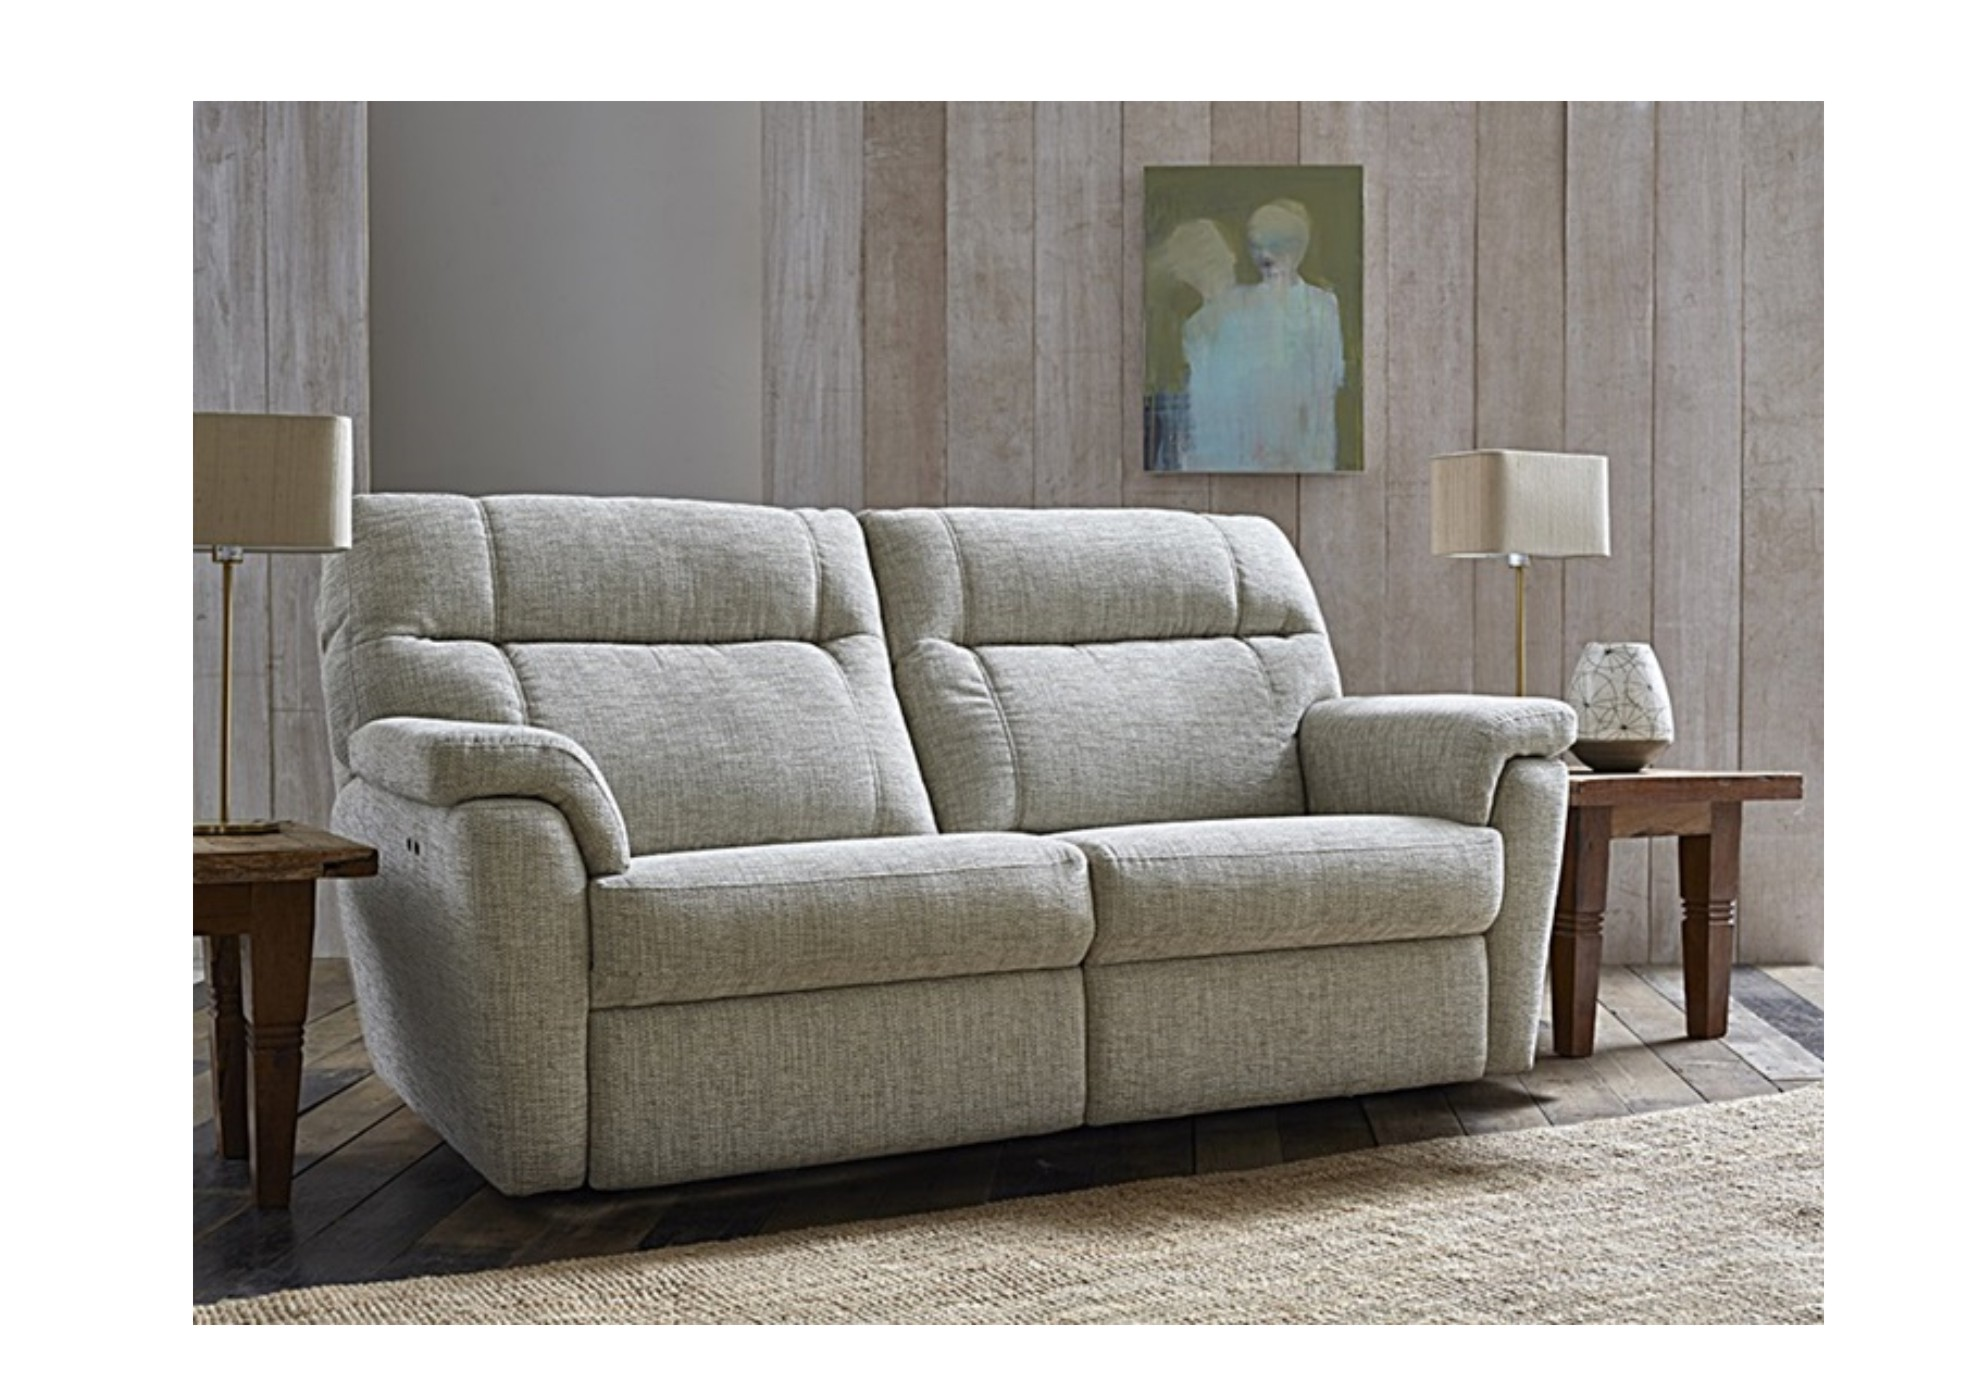 Big Sofa Aspen Aspen 2 Seater Sofa Quality Furniture Hand Crafted And